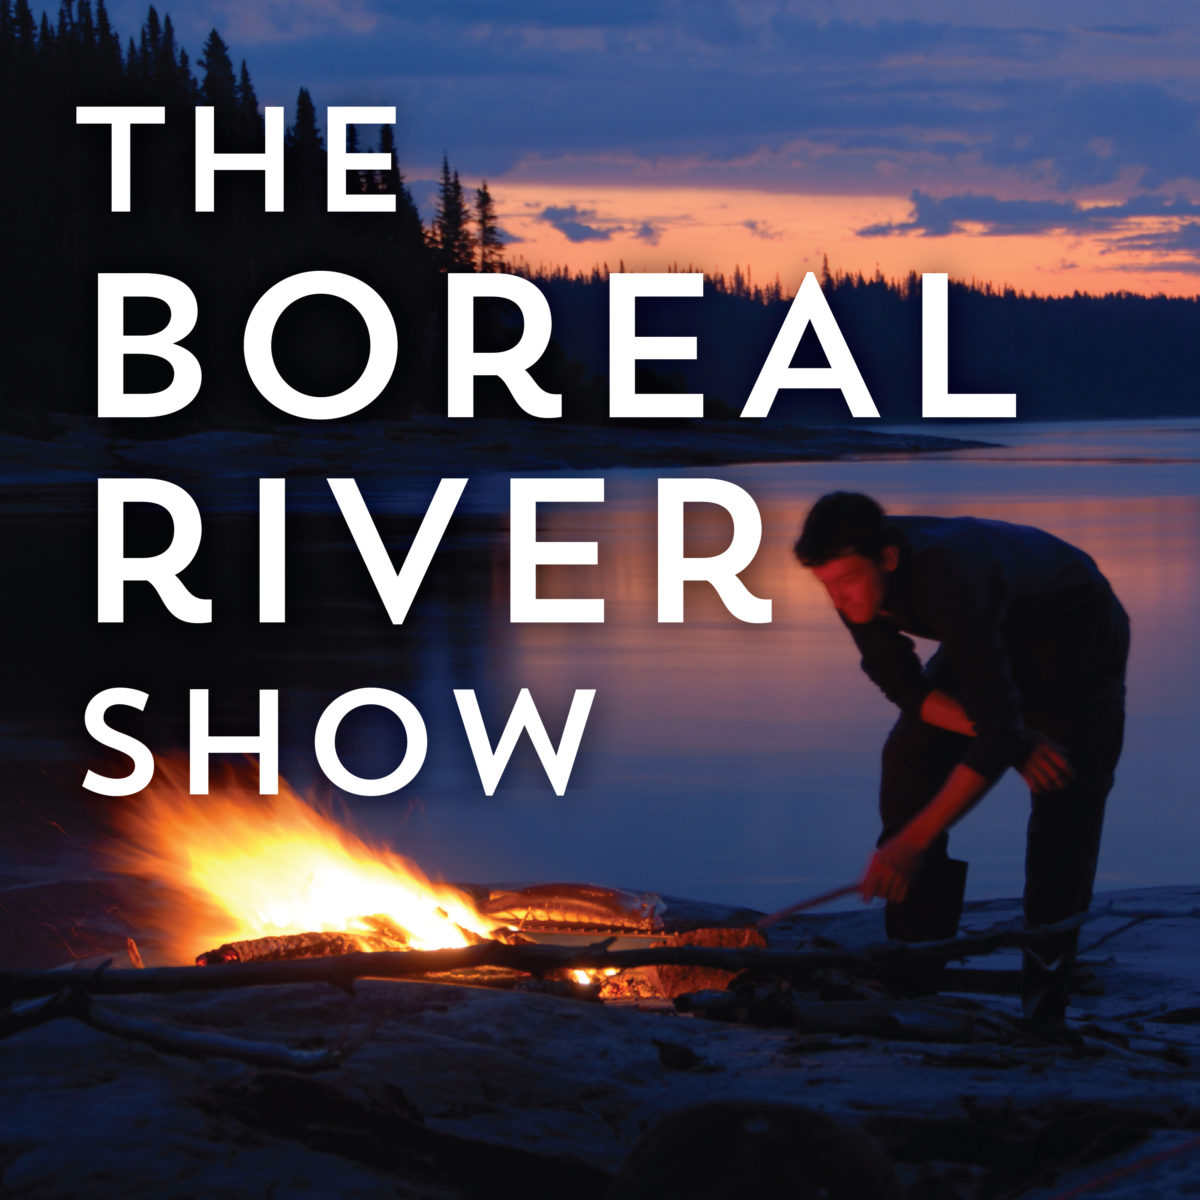 The Boreal River Show - podcast